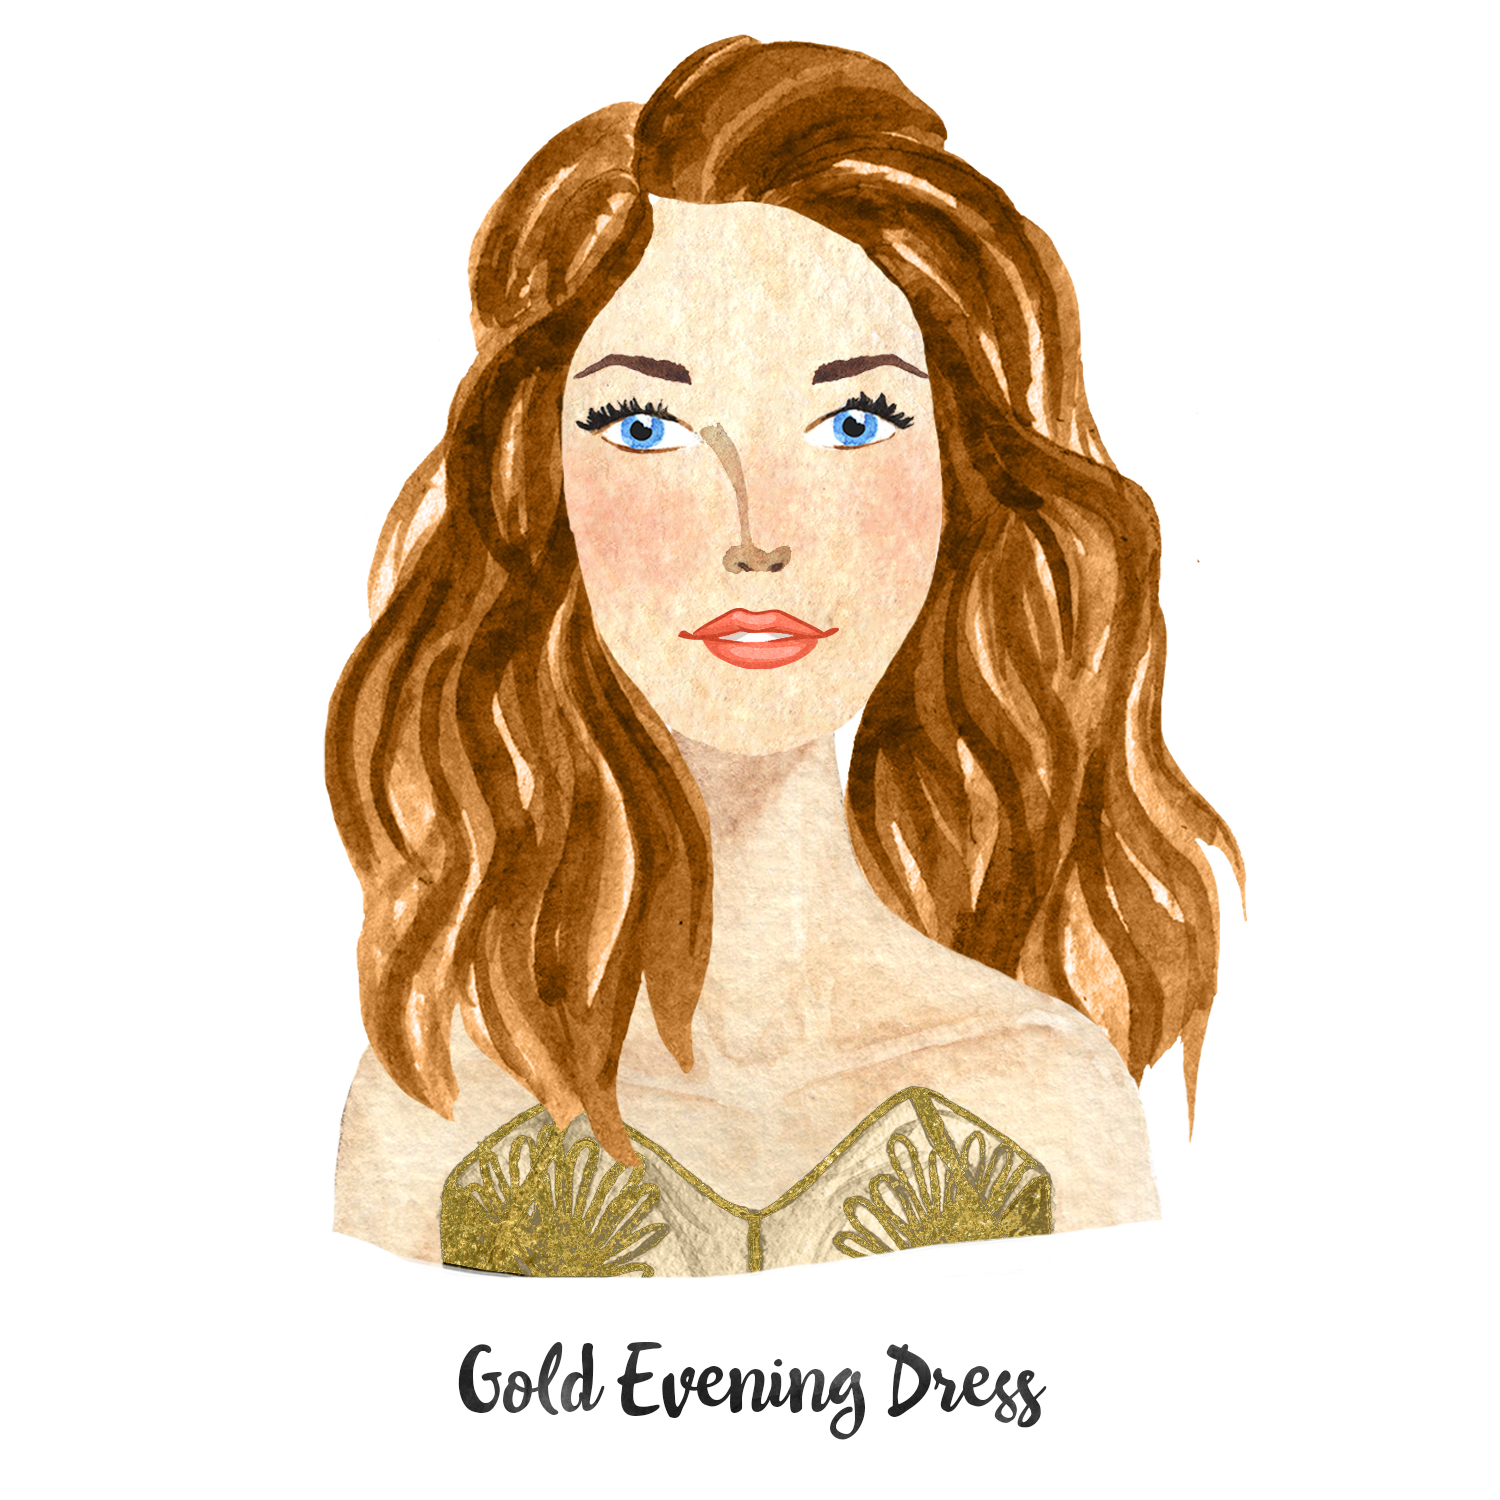 Gold Evening Dress.jpg